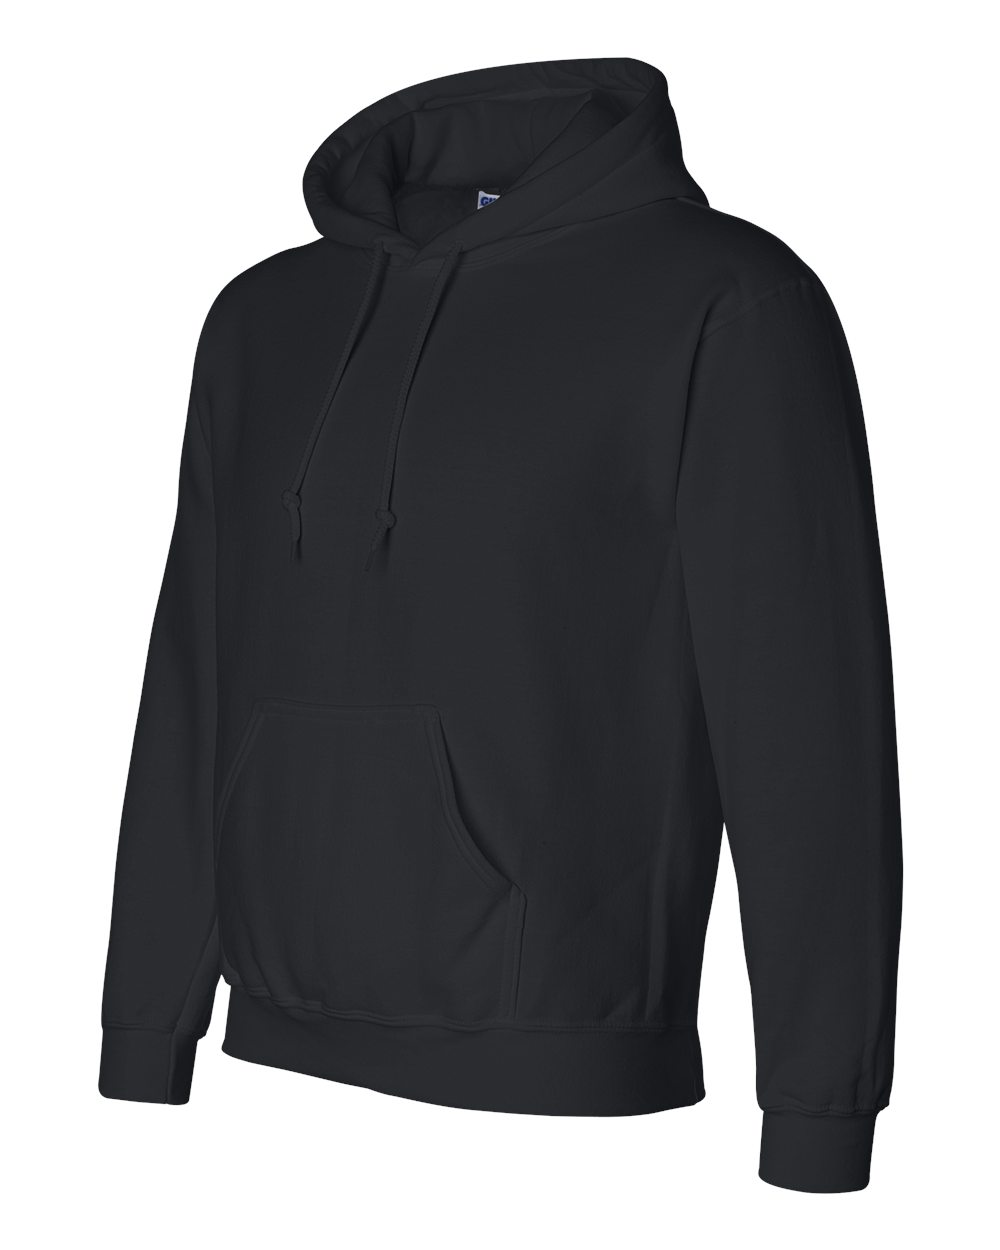 Gildan Ultra Blend Hooded sweater GIL12500 Black